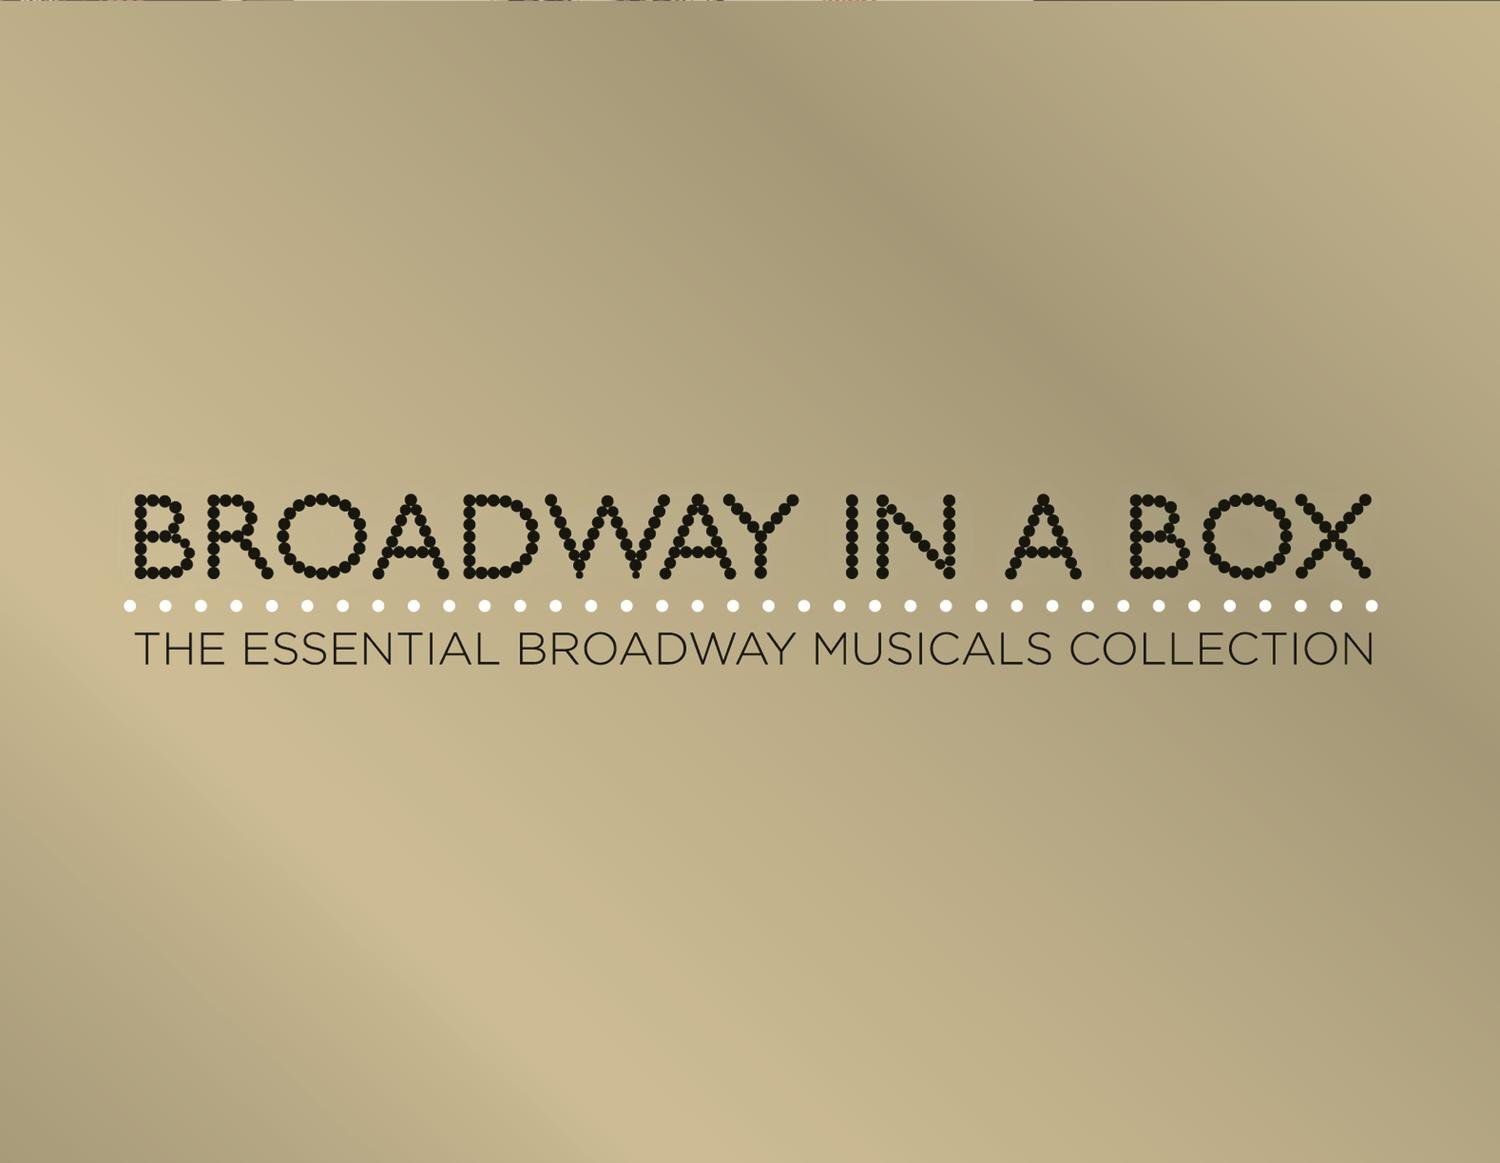 Broadway In A Box - The Essential Br Oadway Musicals Collection by Sony Music Canada Inc.